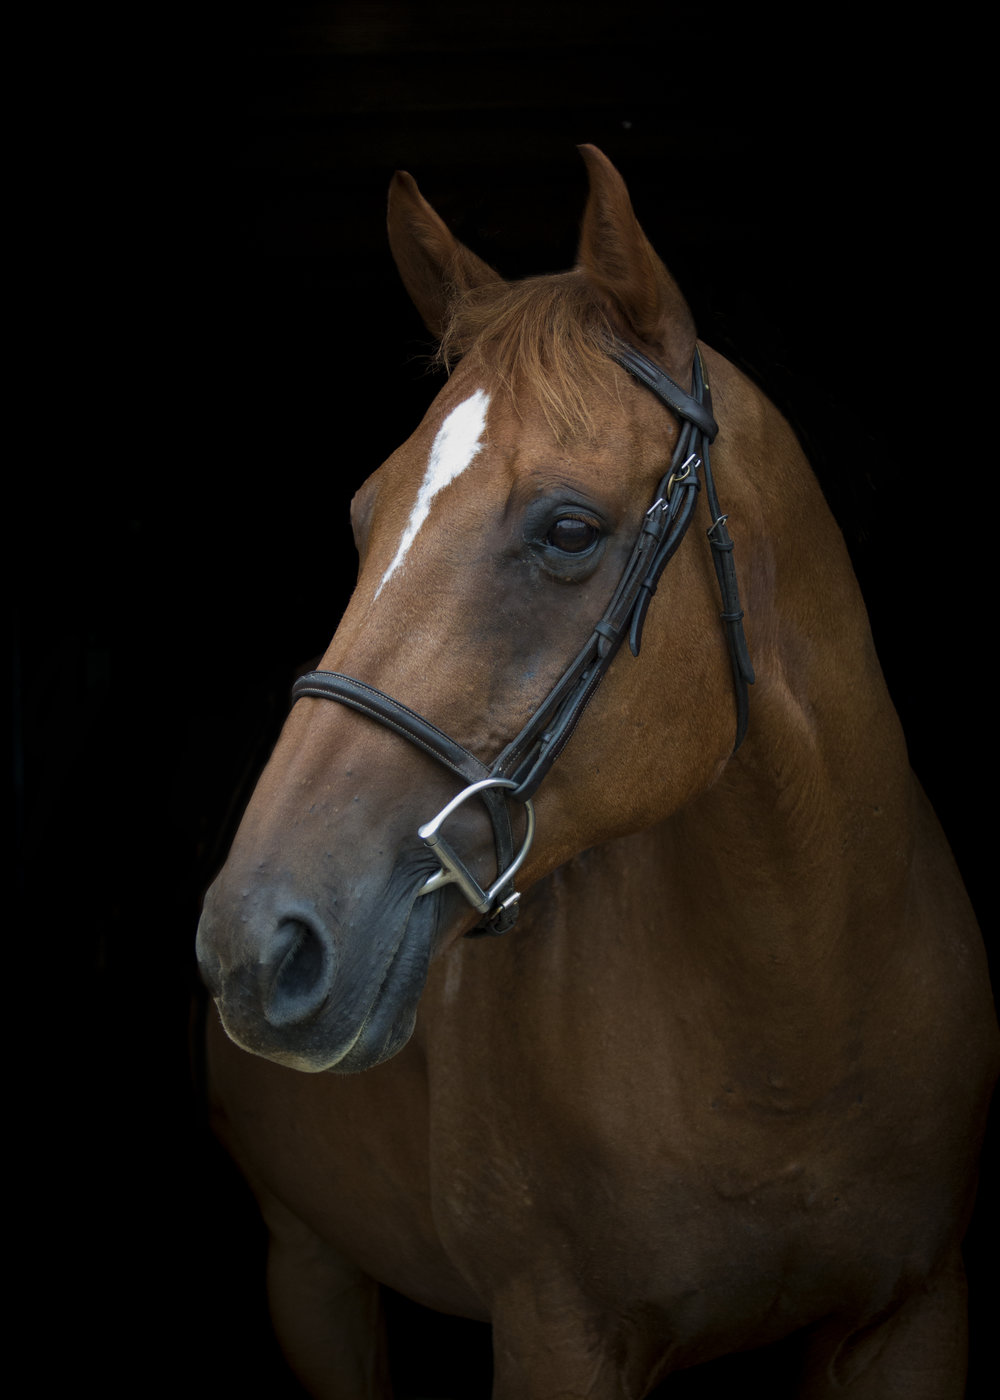 Birthday: 2002 Breed: Thoroughbred Gelding Color: Chestnut Height: 16.1 hands Discipline: Hunter Jumper  Show Name: Why the Buzz Donated by: Renae Flanagan